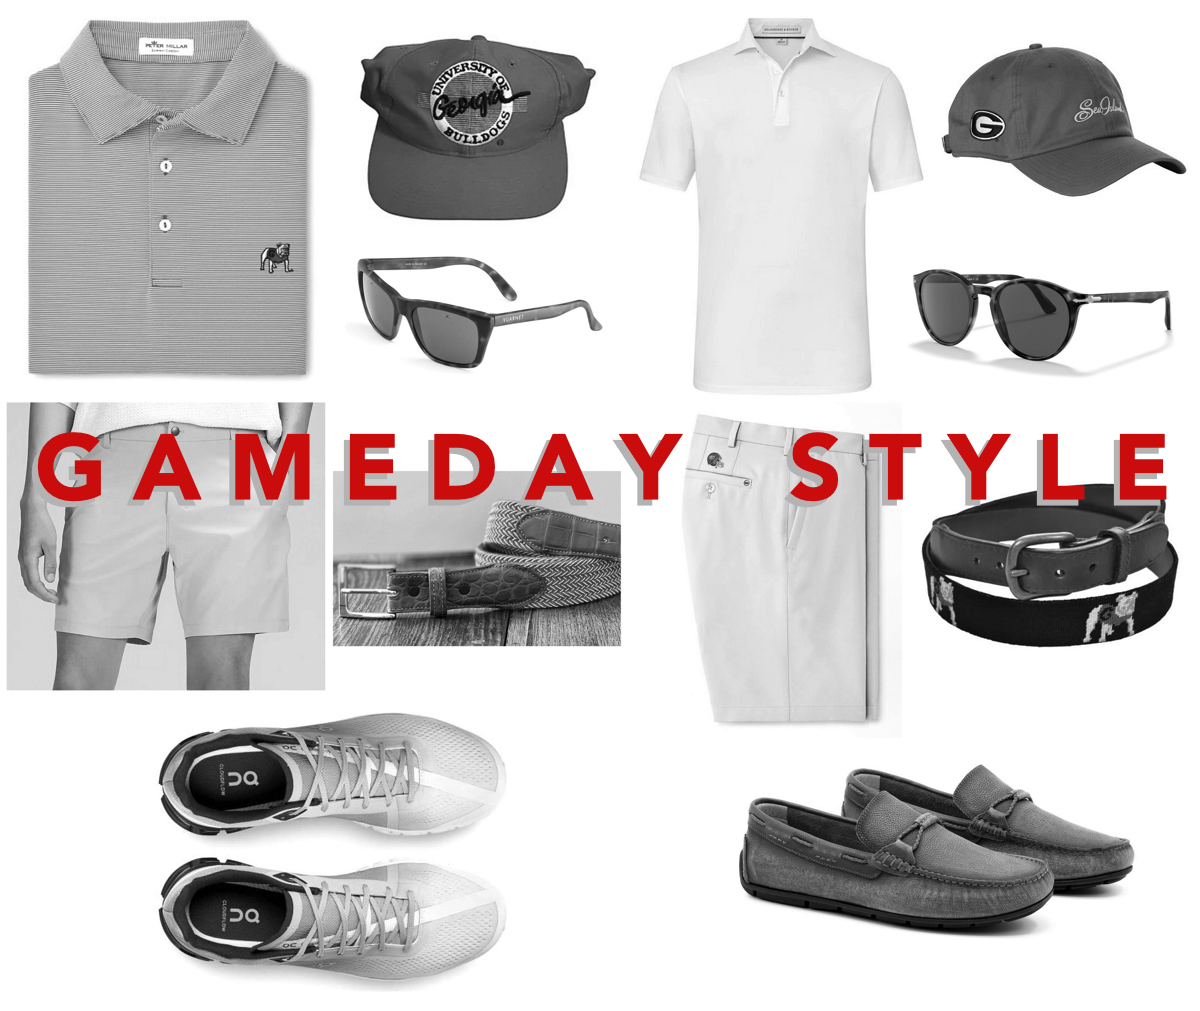 PMGN Gameday Style: Kickoff Edition